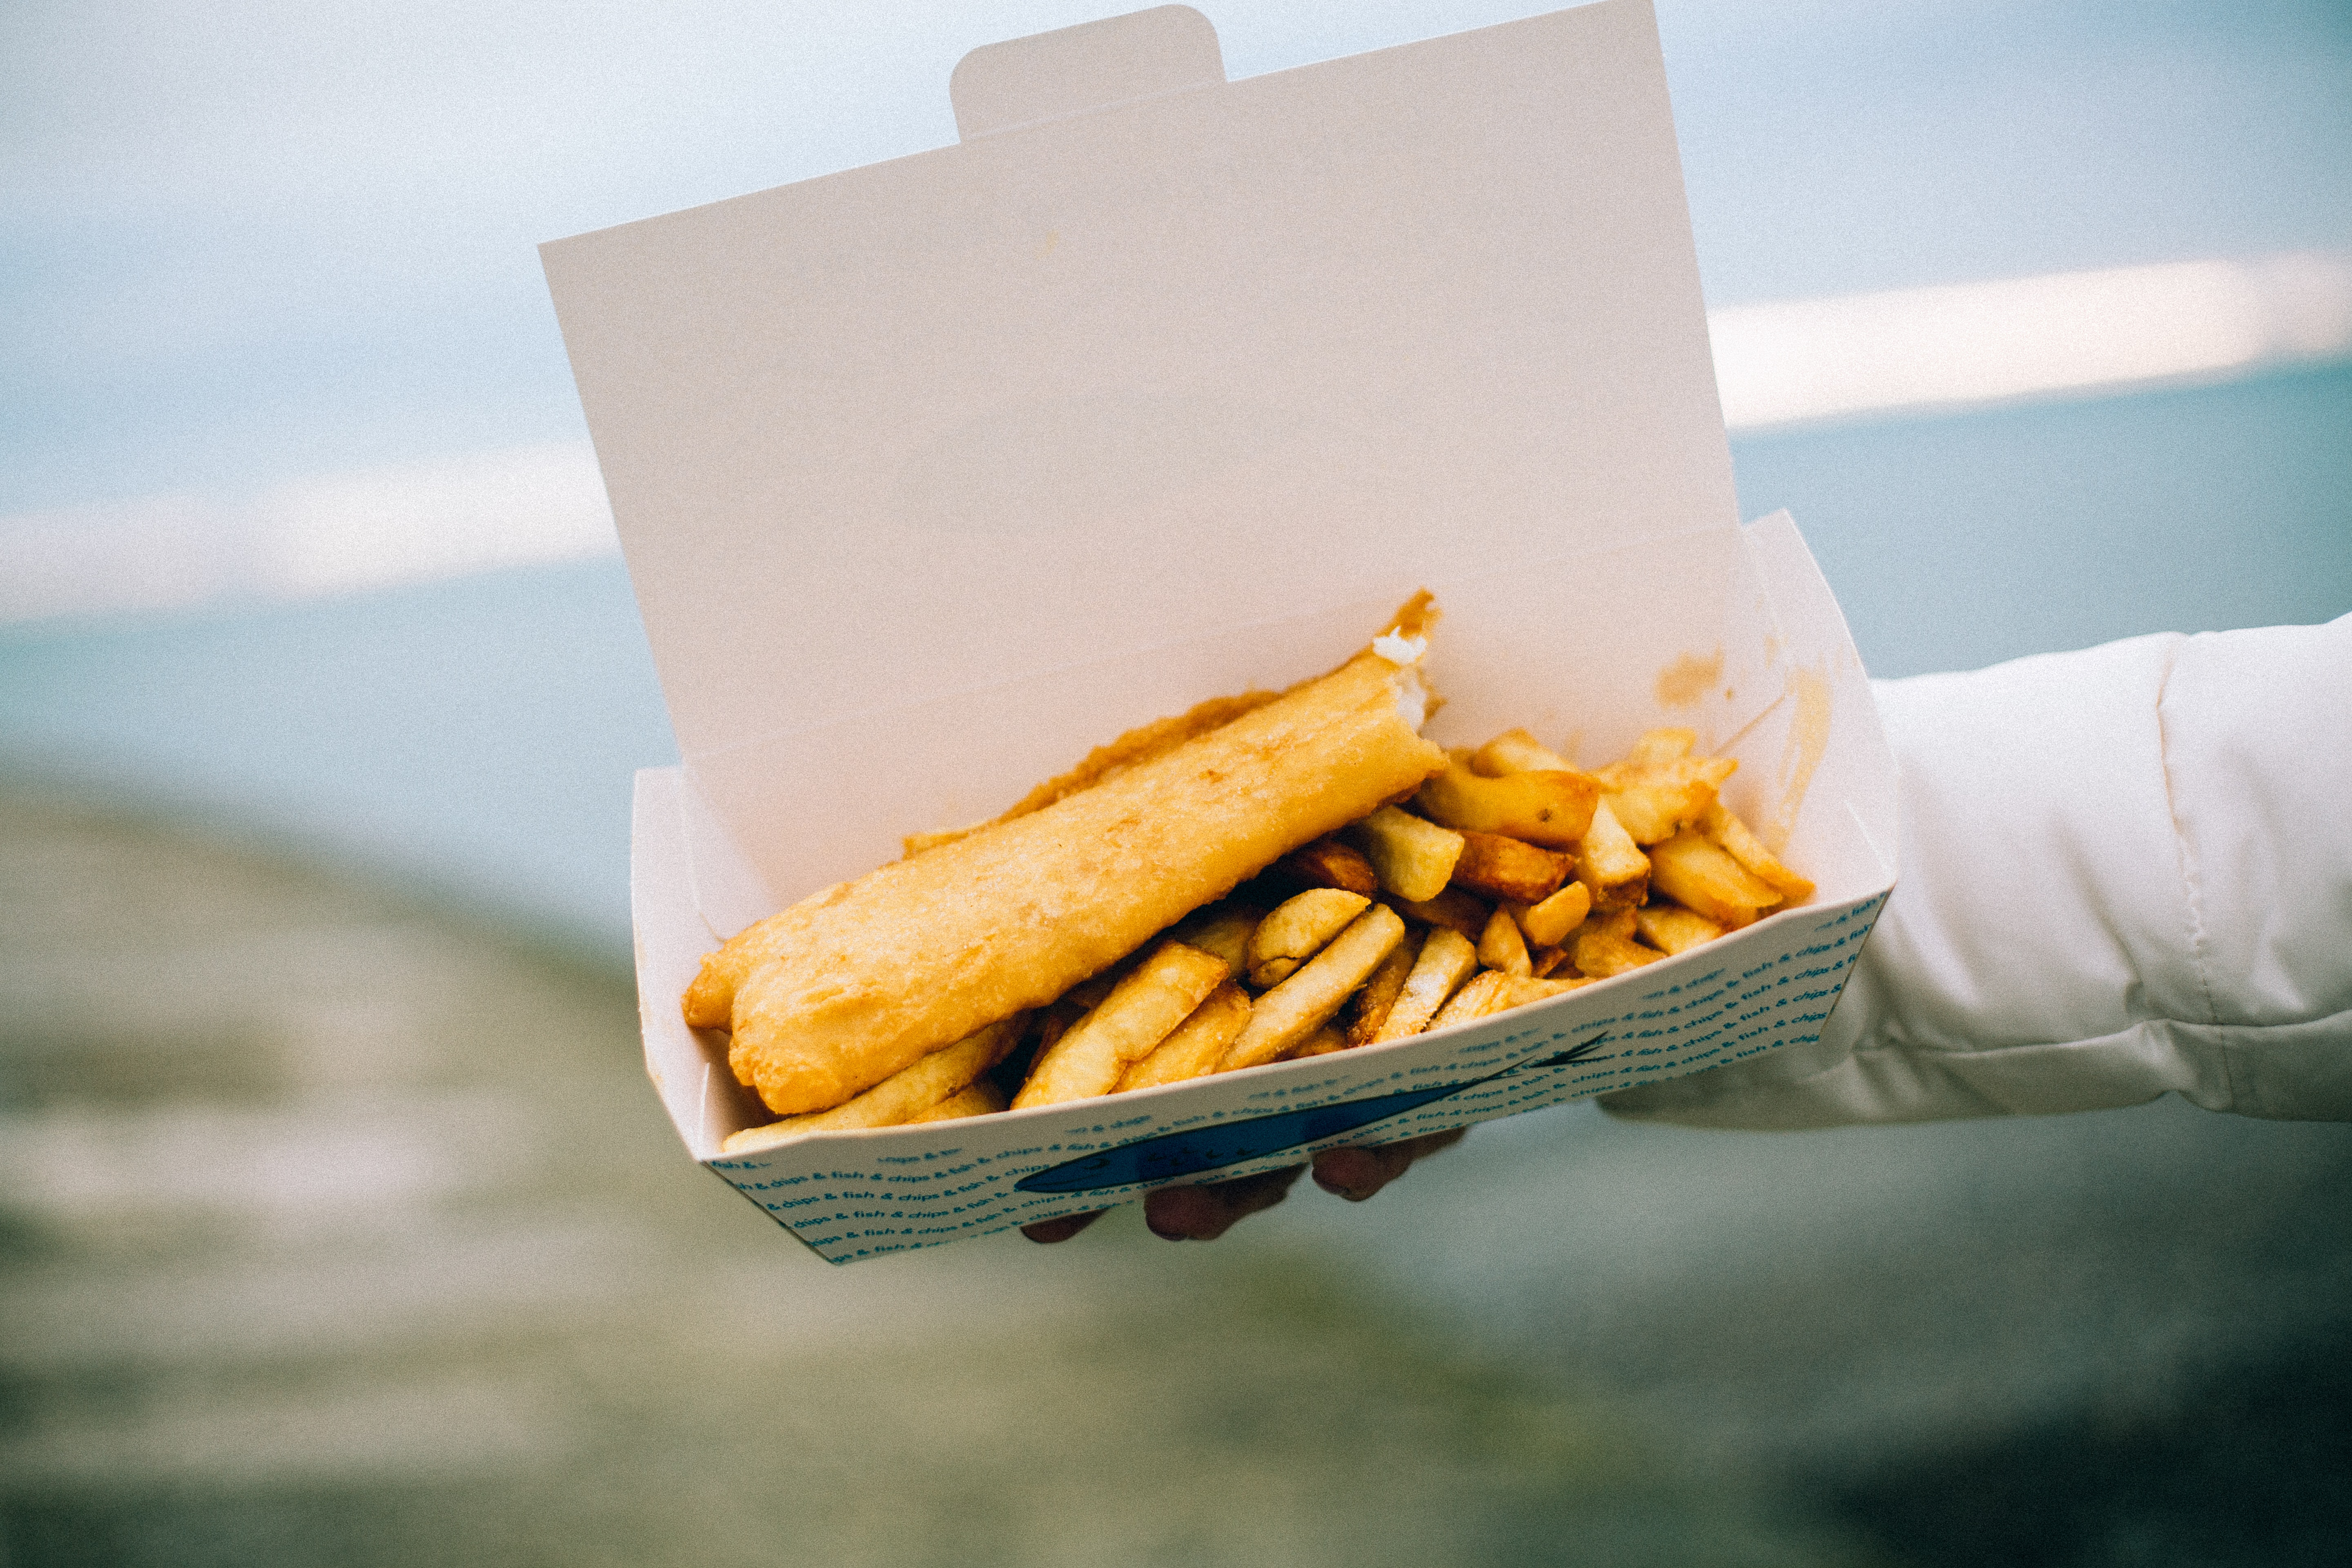 Fish And Chip Shop Opening On Christmas Day To Feed Homeless